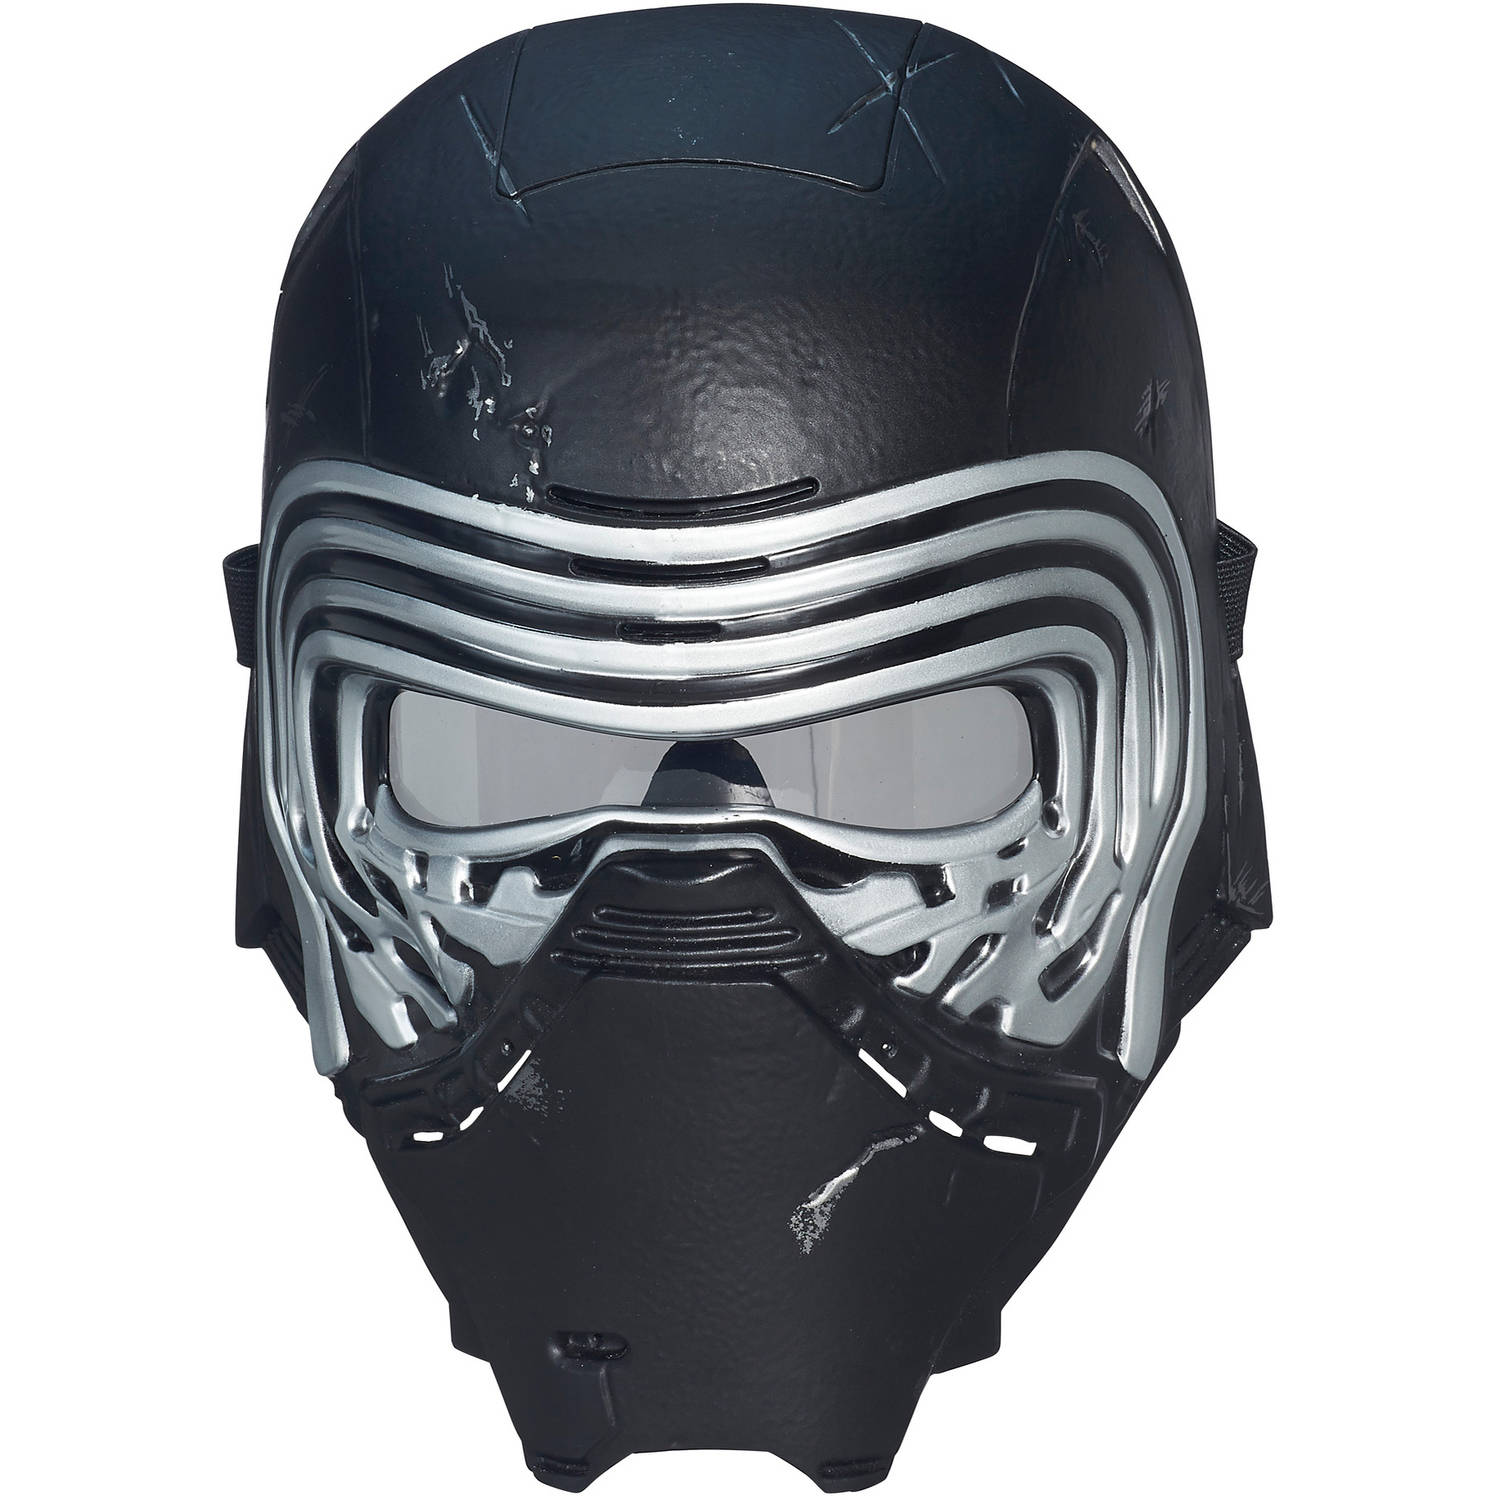 Star Wars The Force Awakens Kylo Ren Electronic Voice Changer Mask